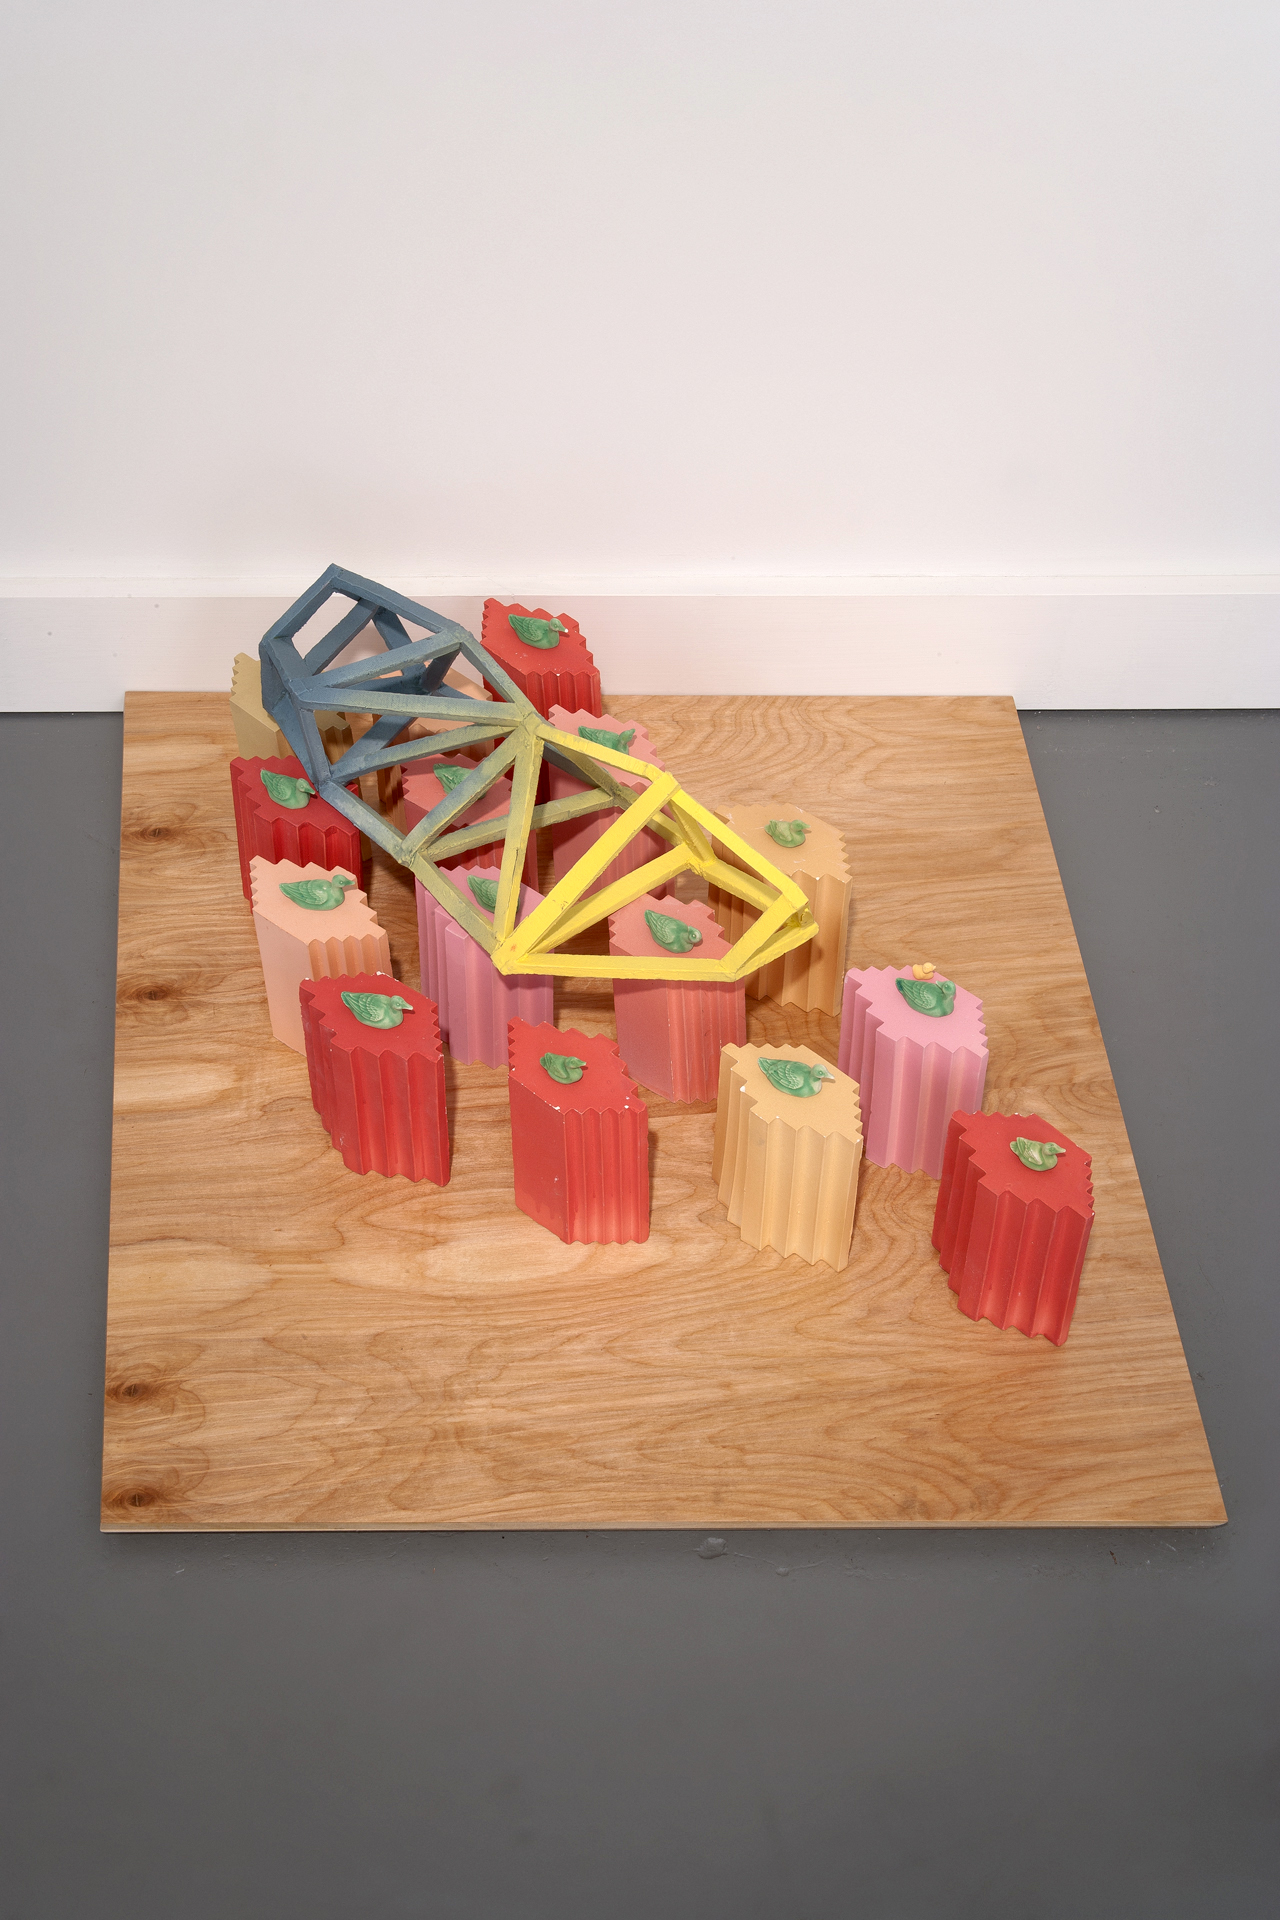 Bridge over Troubled Water   Collaboration with Hank Hafkemeyer  Ceramic, plywood 2012 Photo Credit: E.G. Schempf